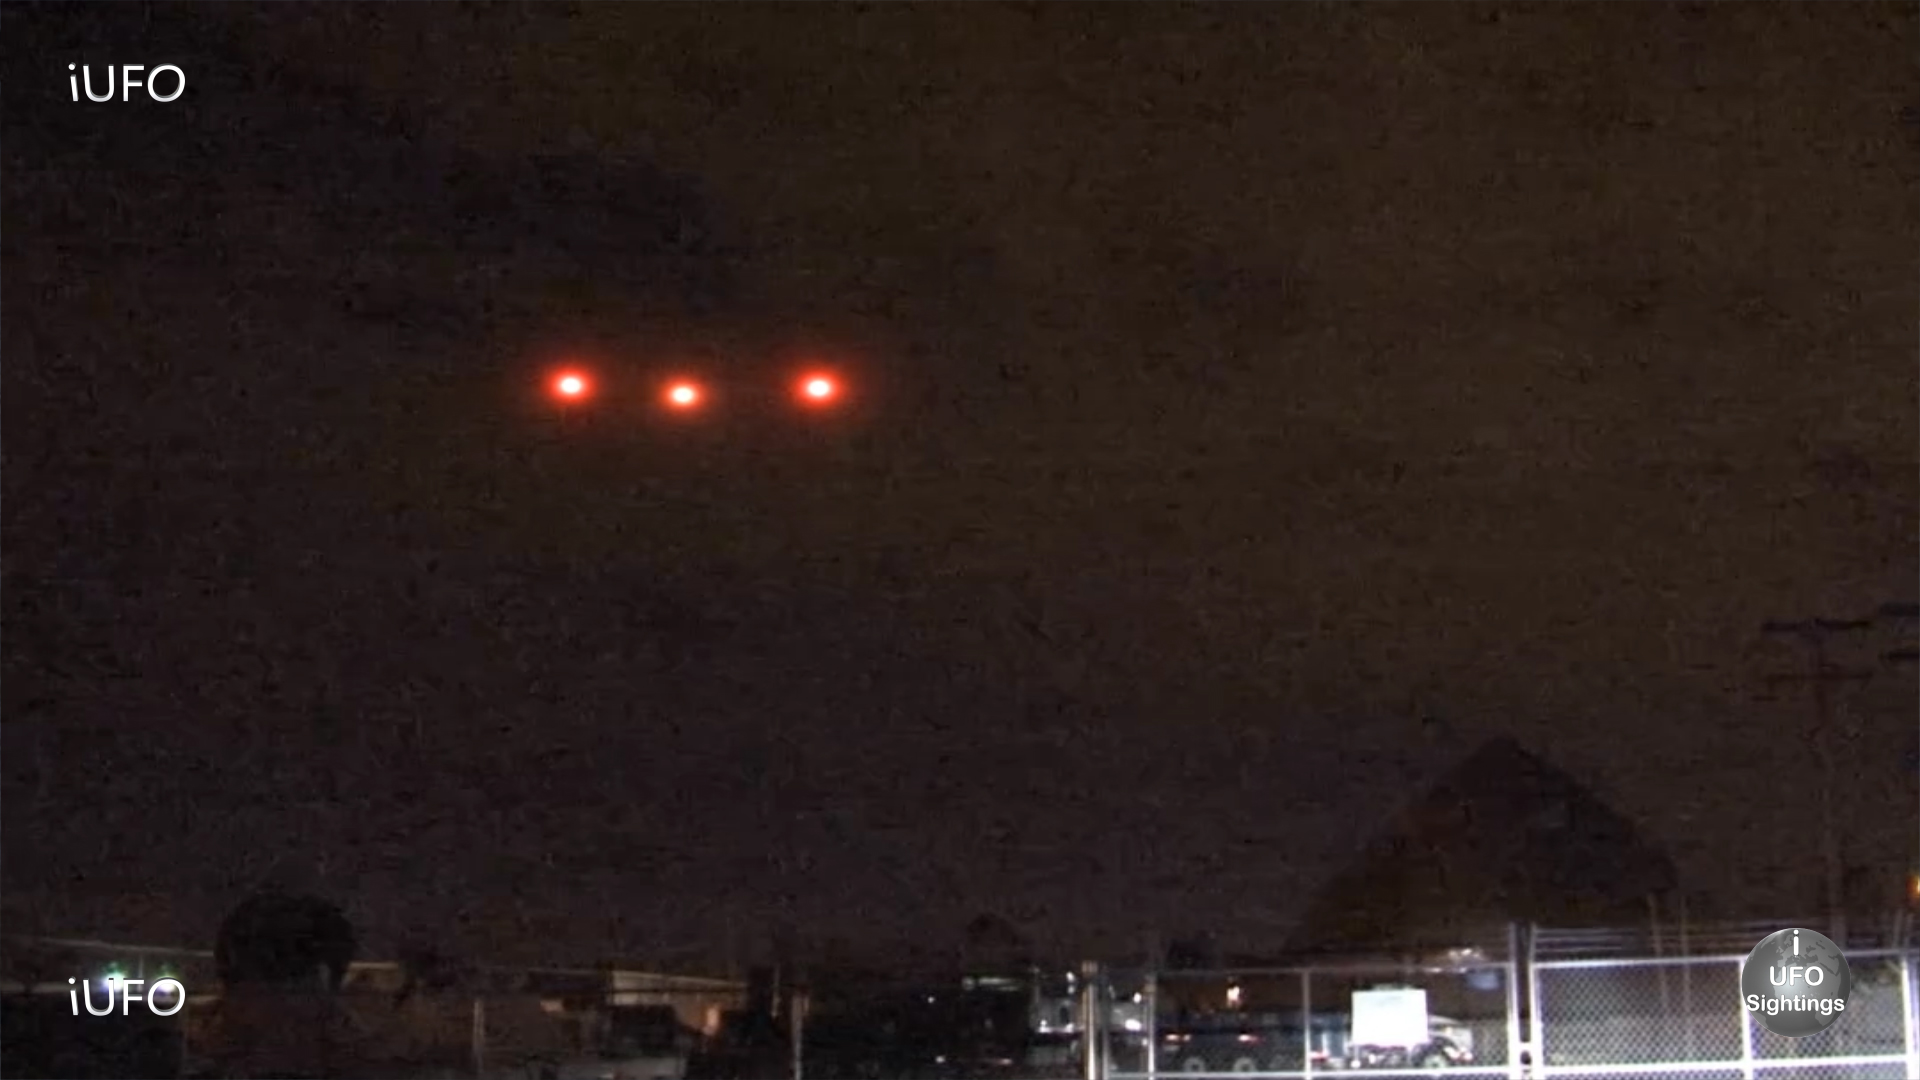 a paper on ufo sightings Essay ufo(unidentified flying object) the oxford english dictionary defines a ufo as an unidentified flying object a 'flying saucer' the word was first used in print by donald keyhoe in 1953[1.